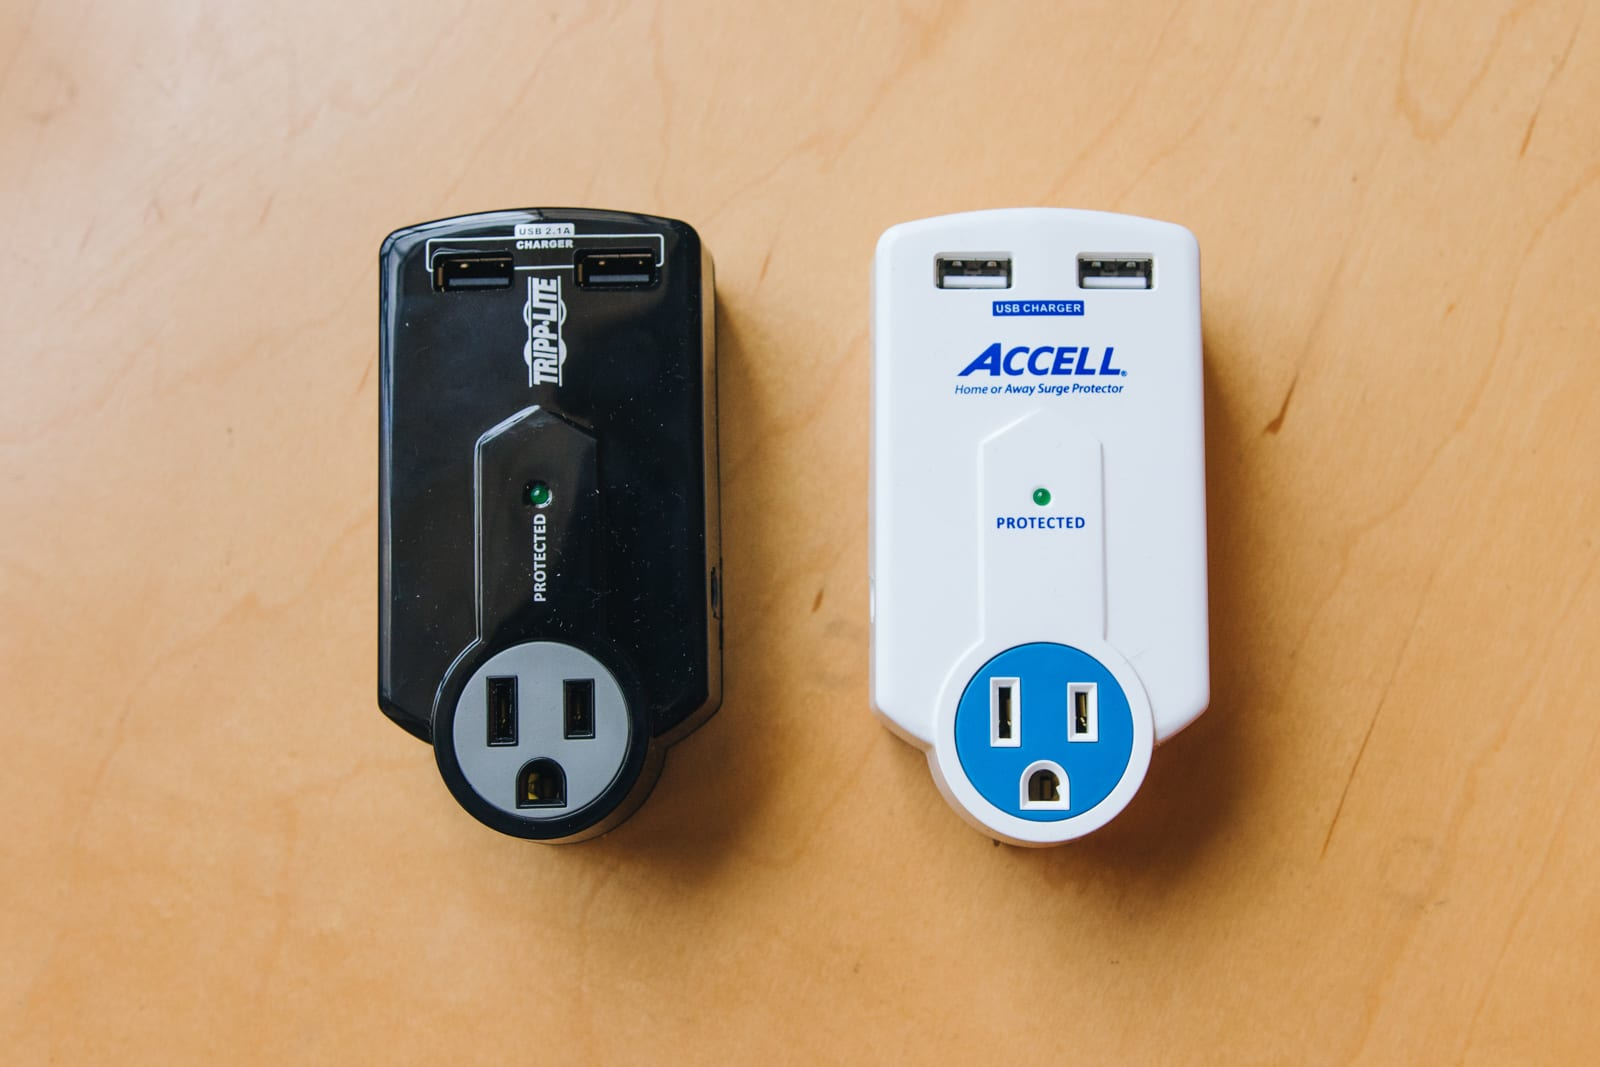 The best portable power strips and surge protectors with USB